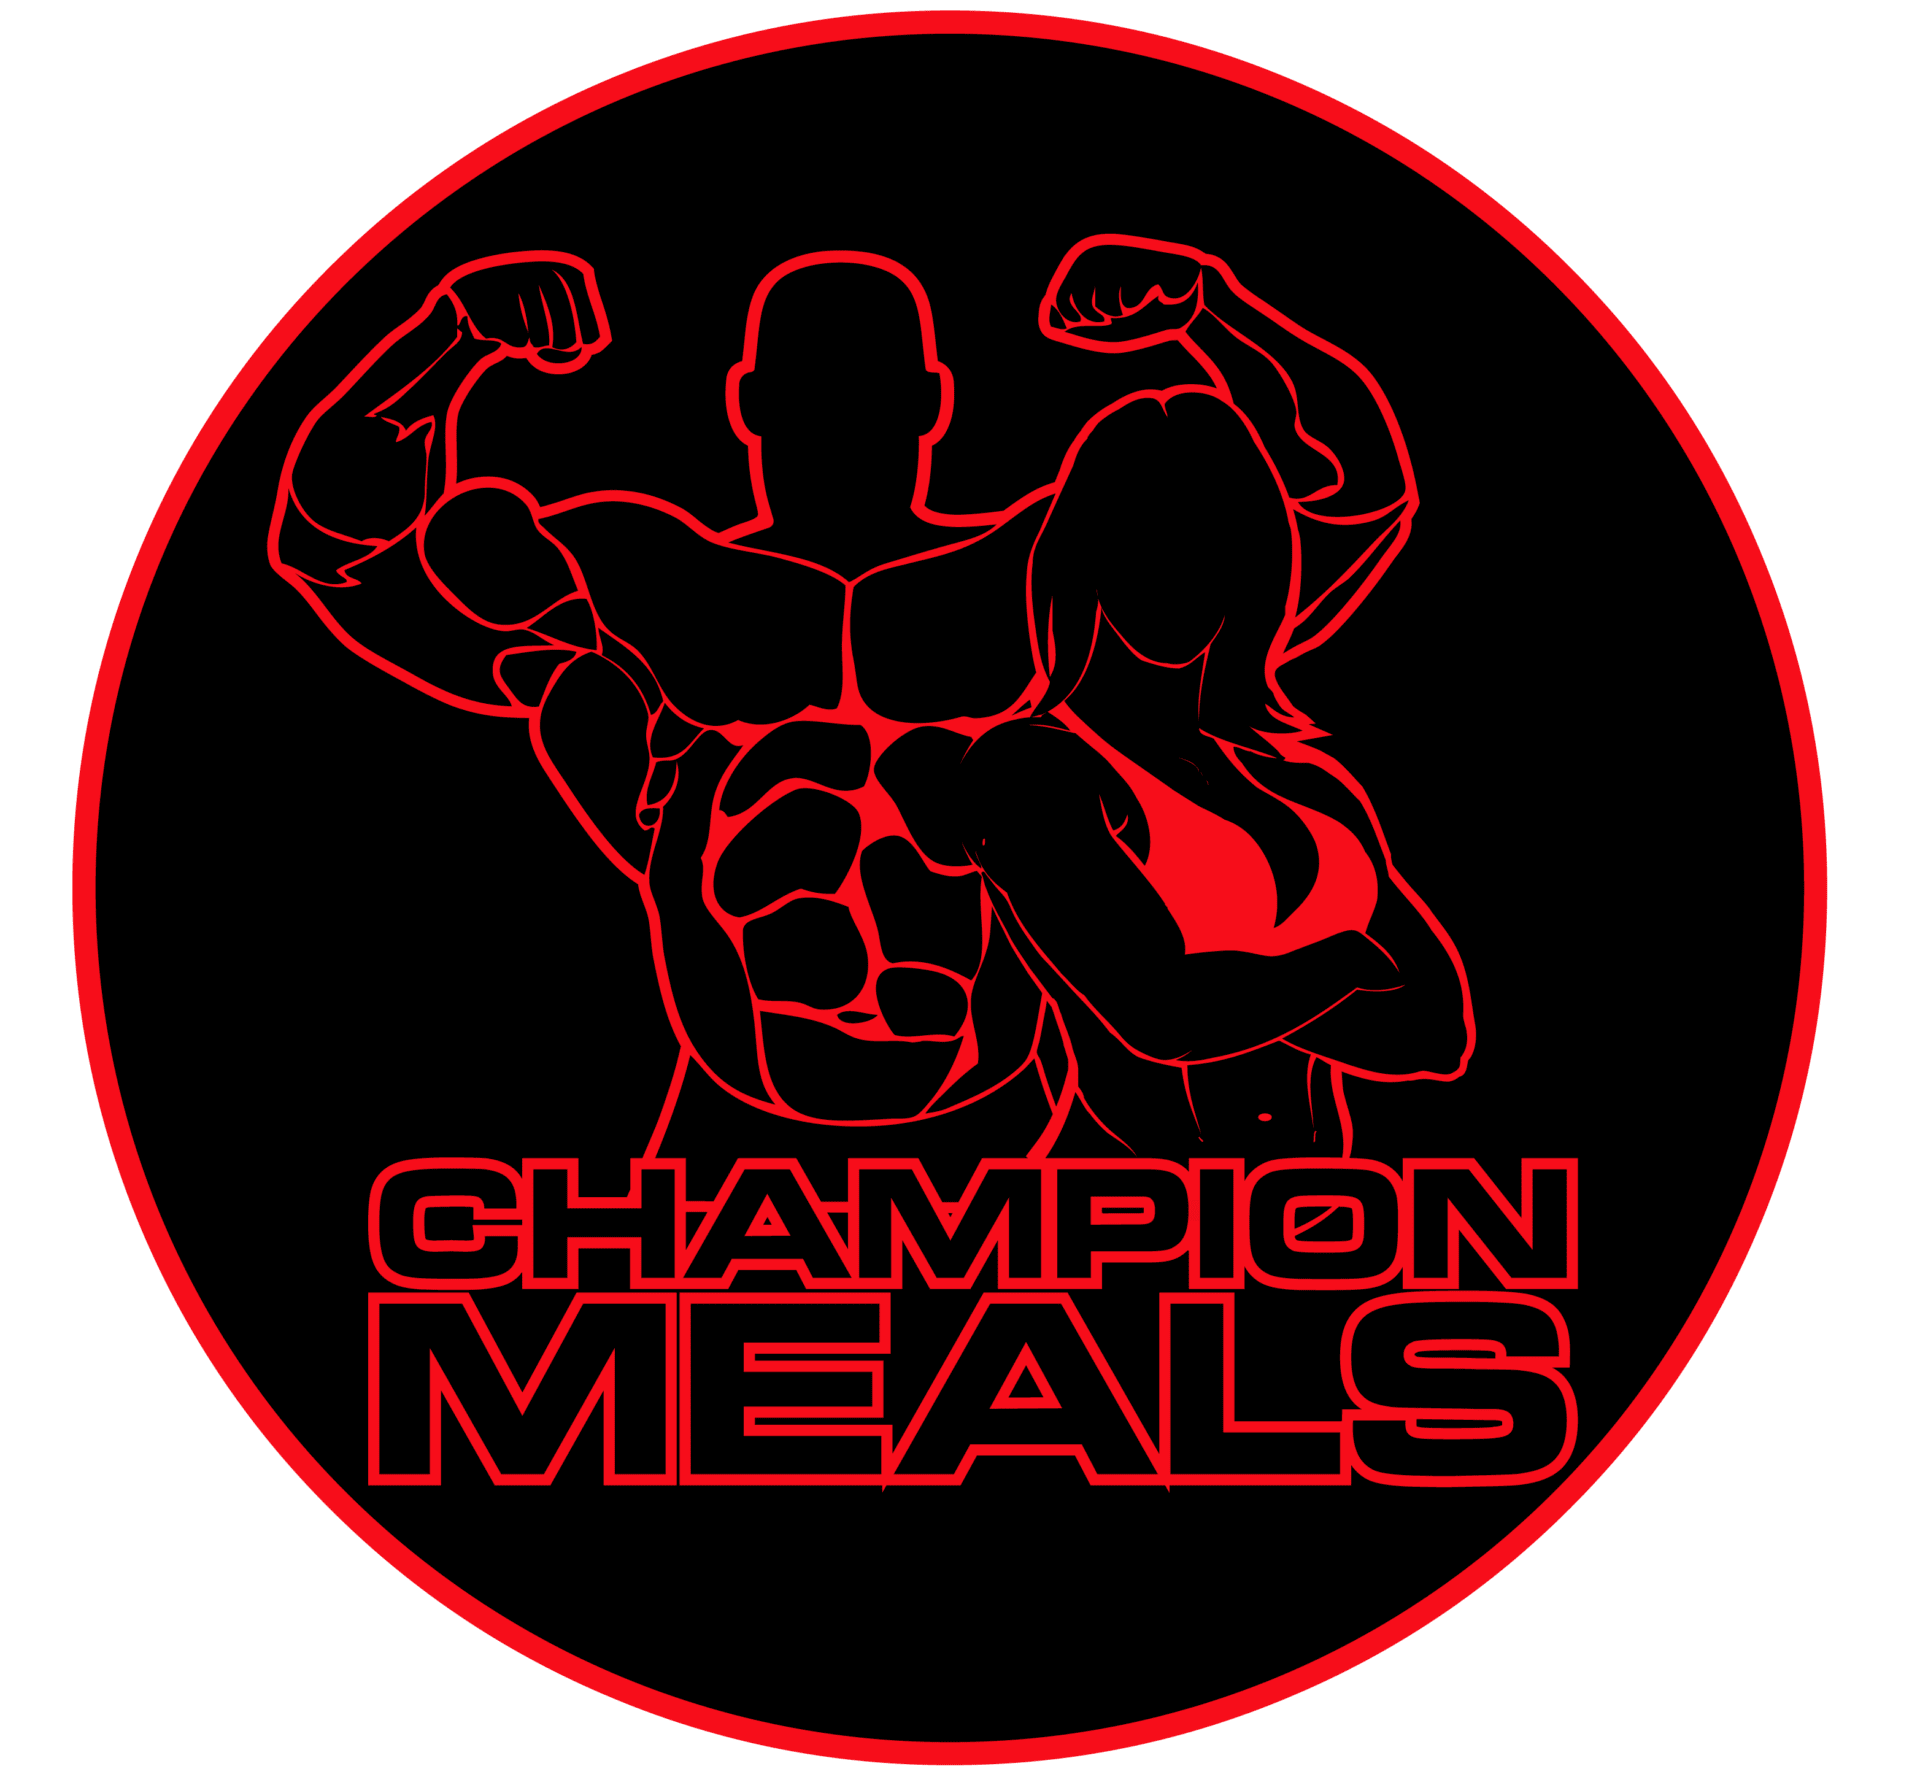 Champion-Meals-Master-Logo-Printable-BW-and-BR.png